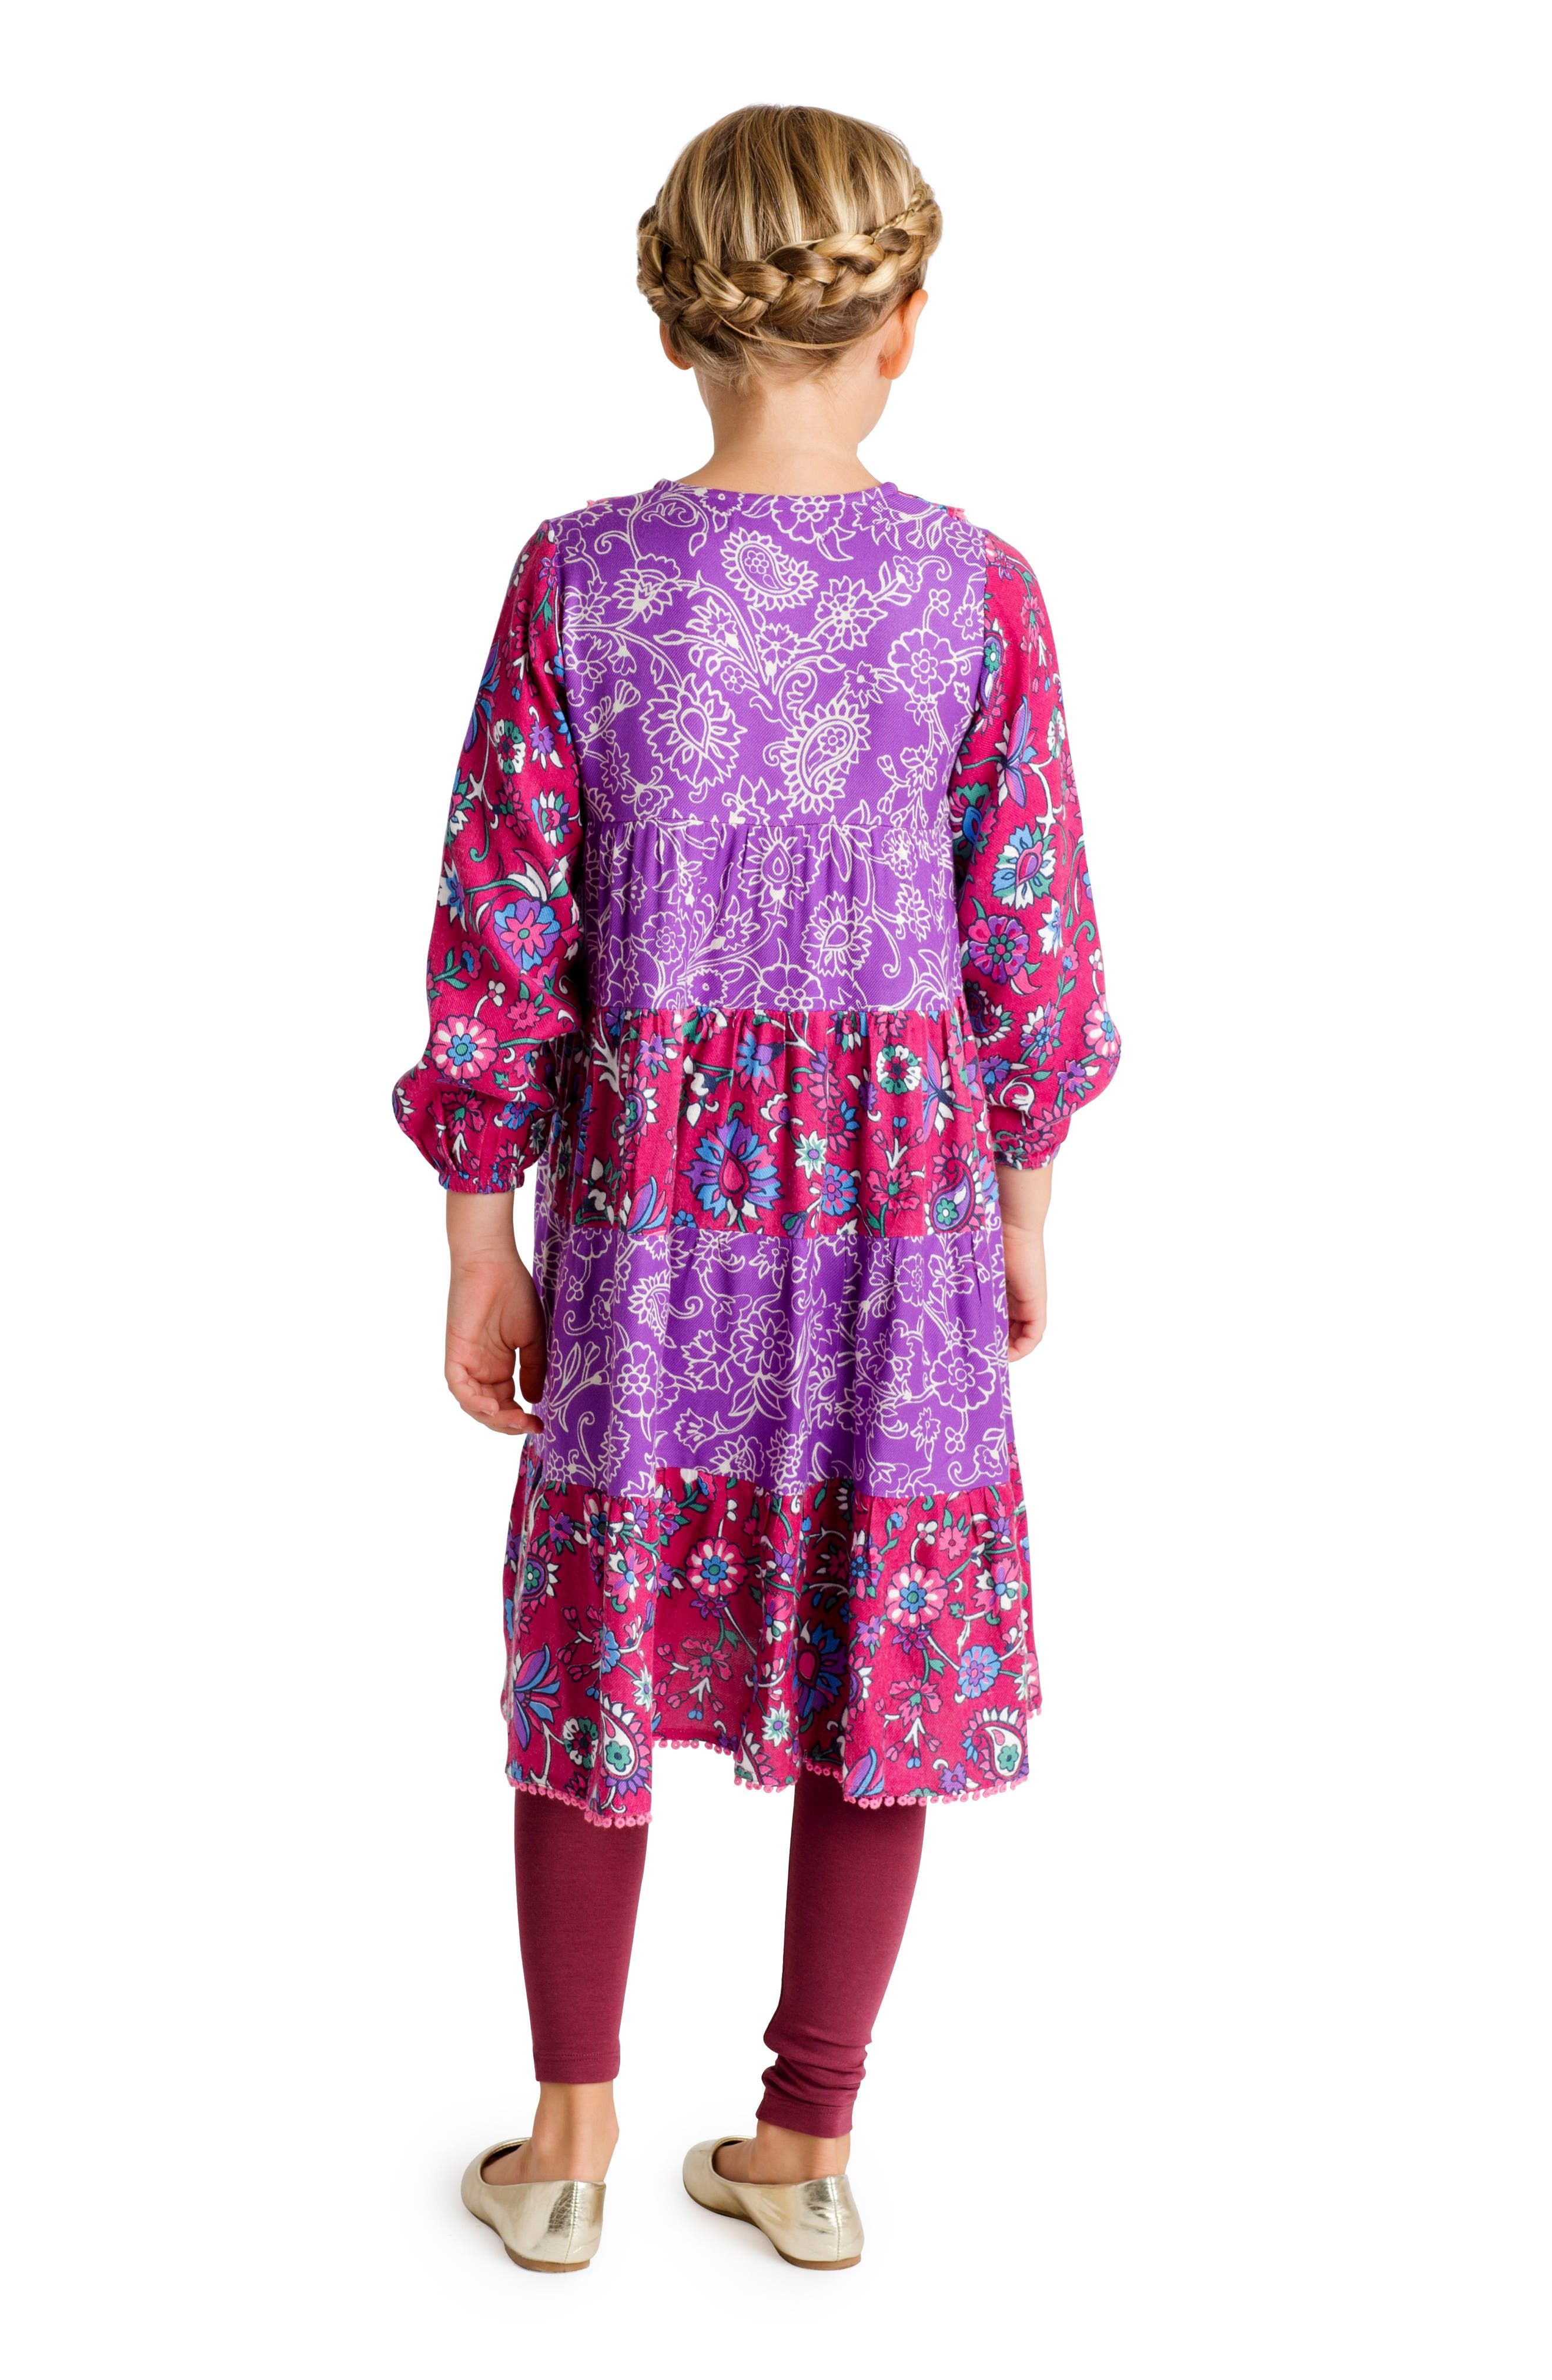 Tiered Floral Dress,                             Alternate thumbnail 3, color,                             500